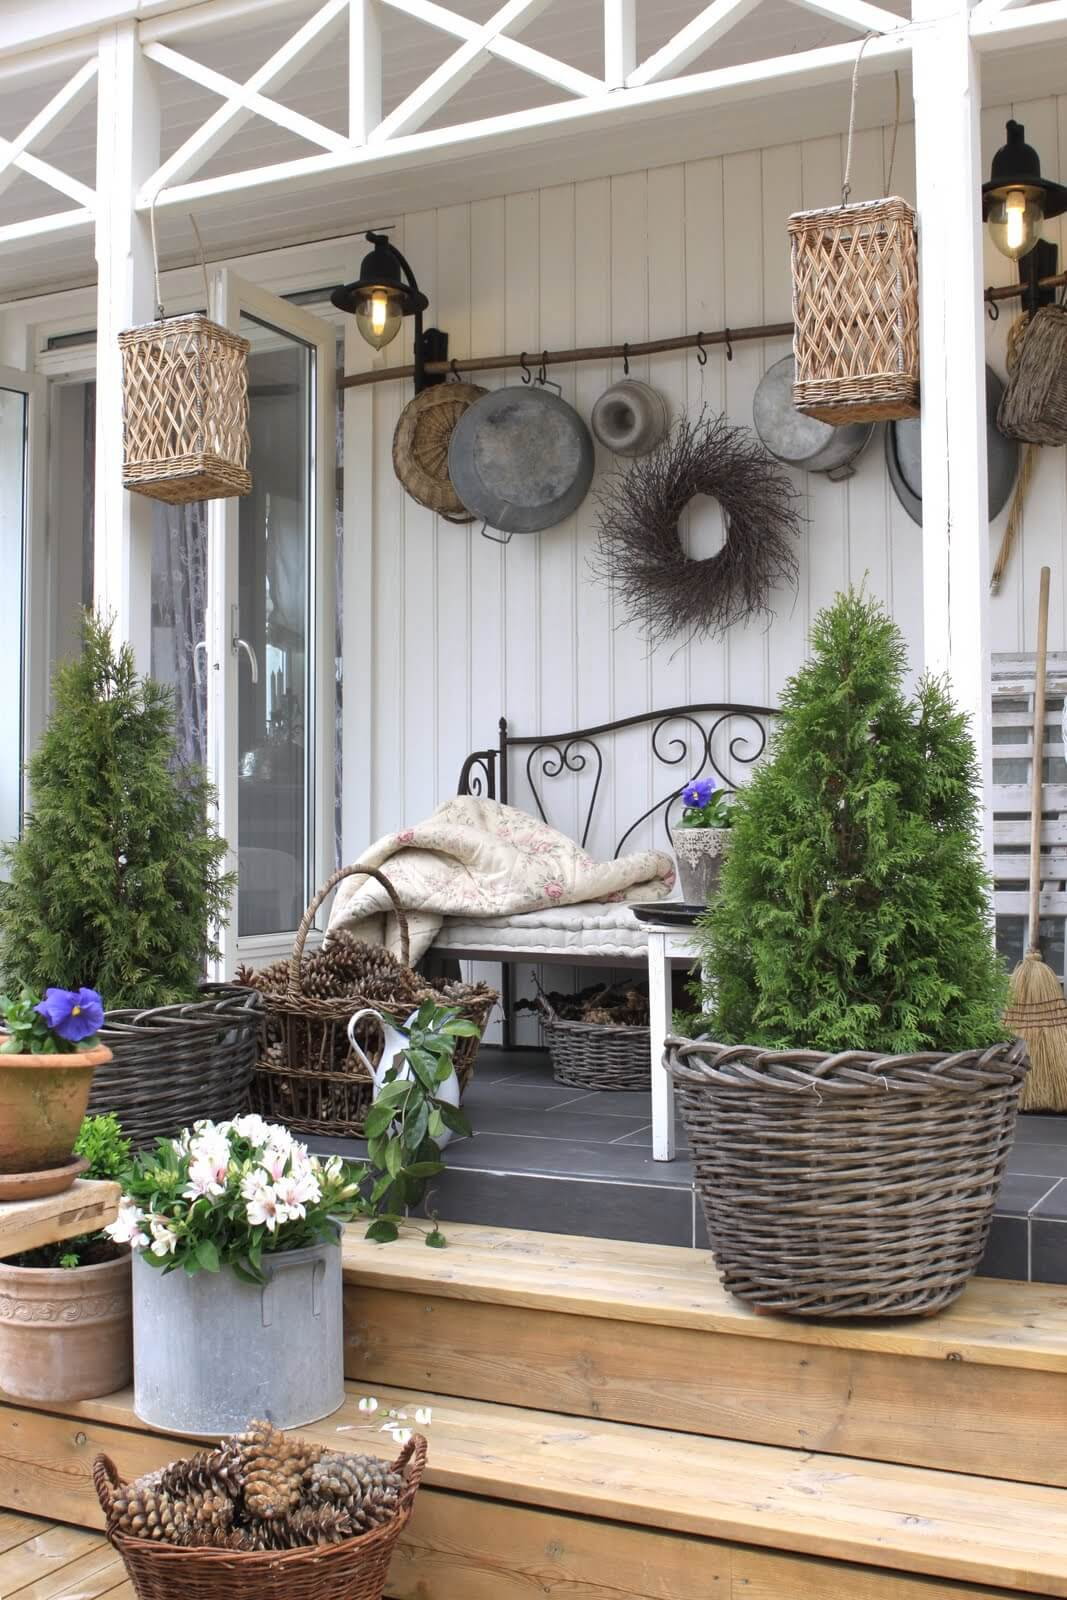 47 Best Rustic Farmhouse Porch Decor Ideas and Designs for 2018